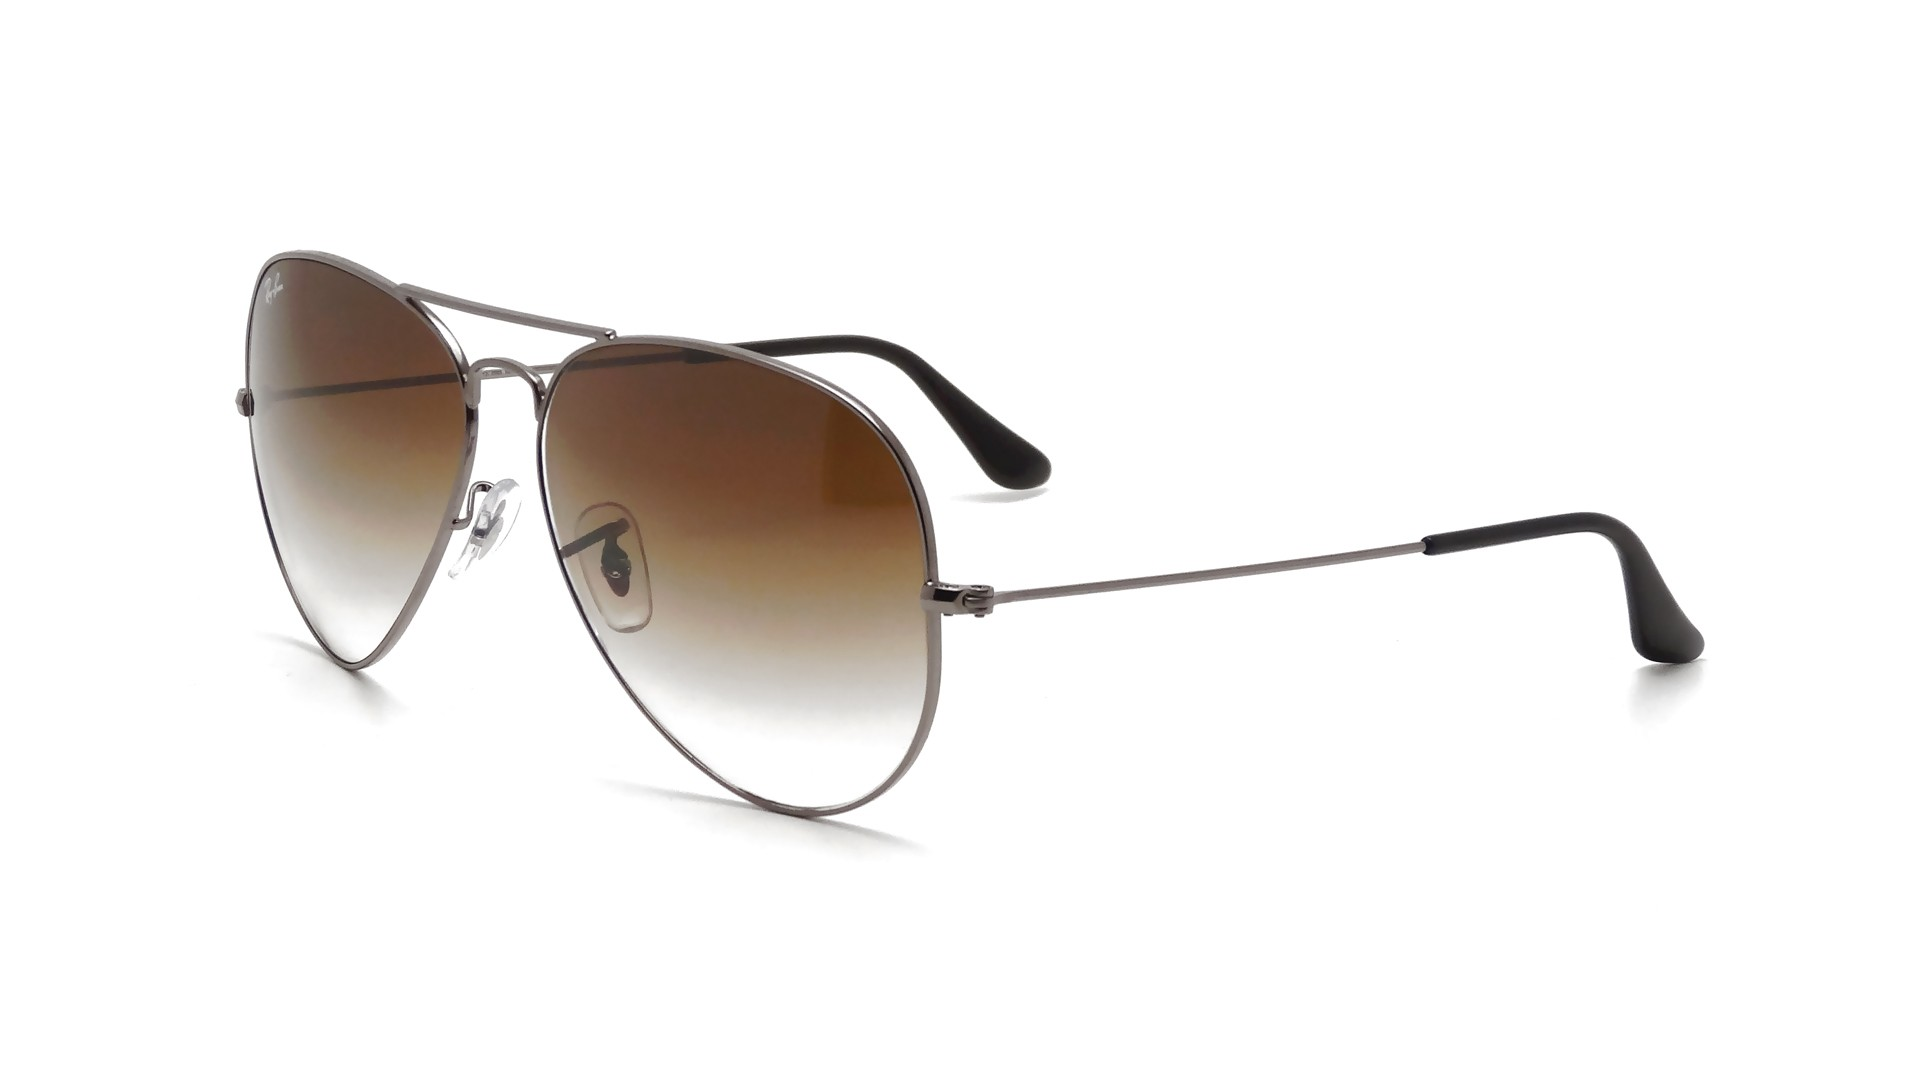 Sunglasses Ray-Ban Aviator Large Metal Grey RB3025 004 51 62-14 Large  Gradient ad6c54806507